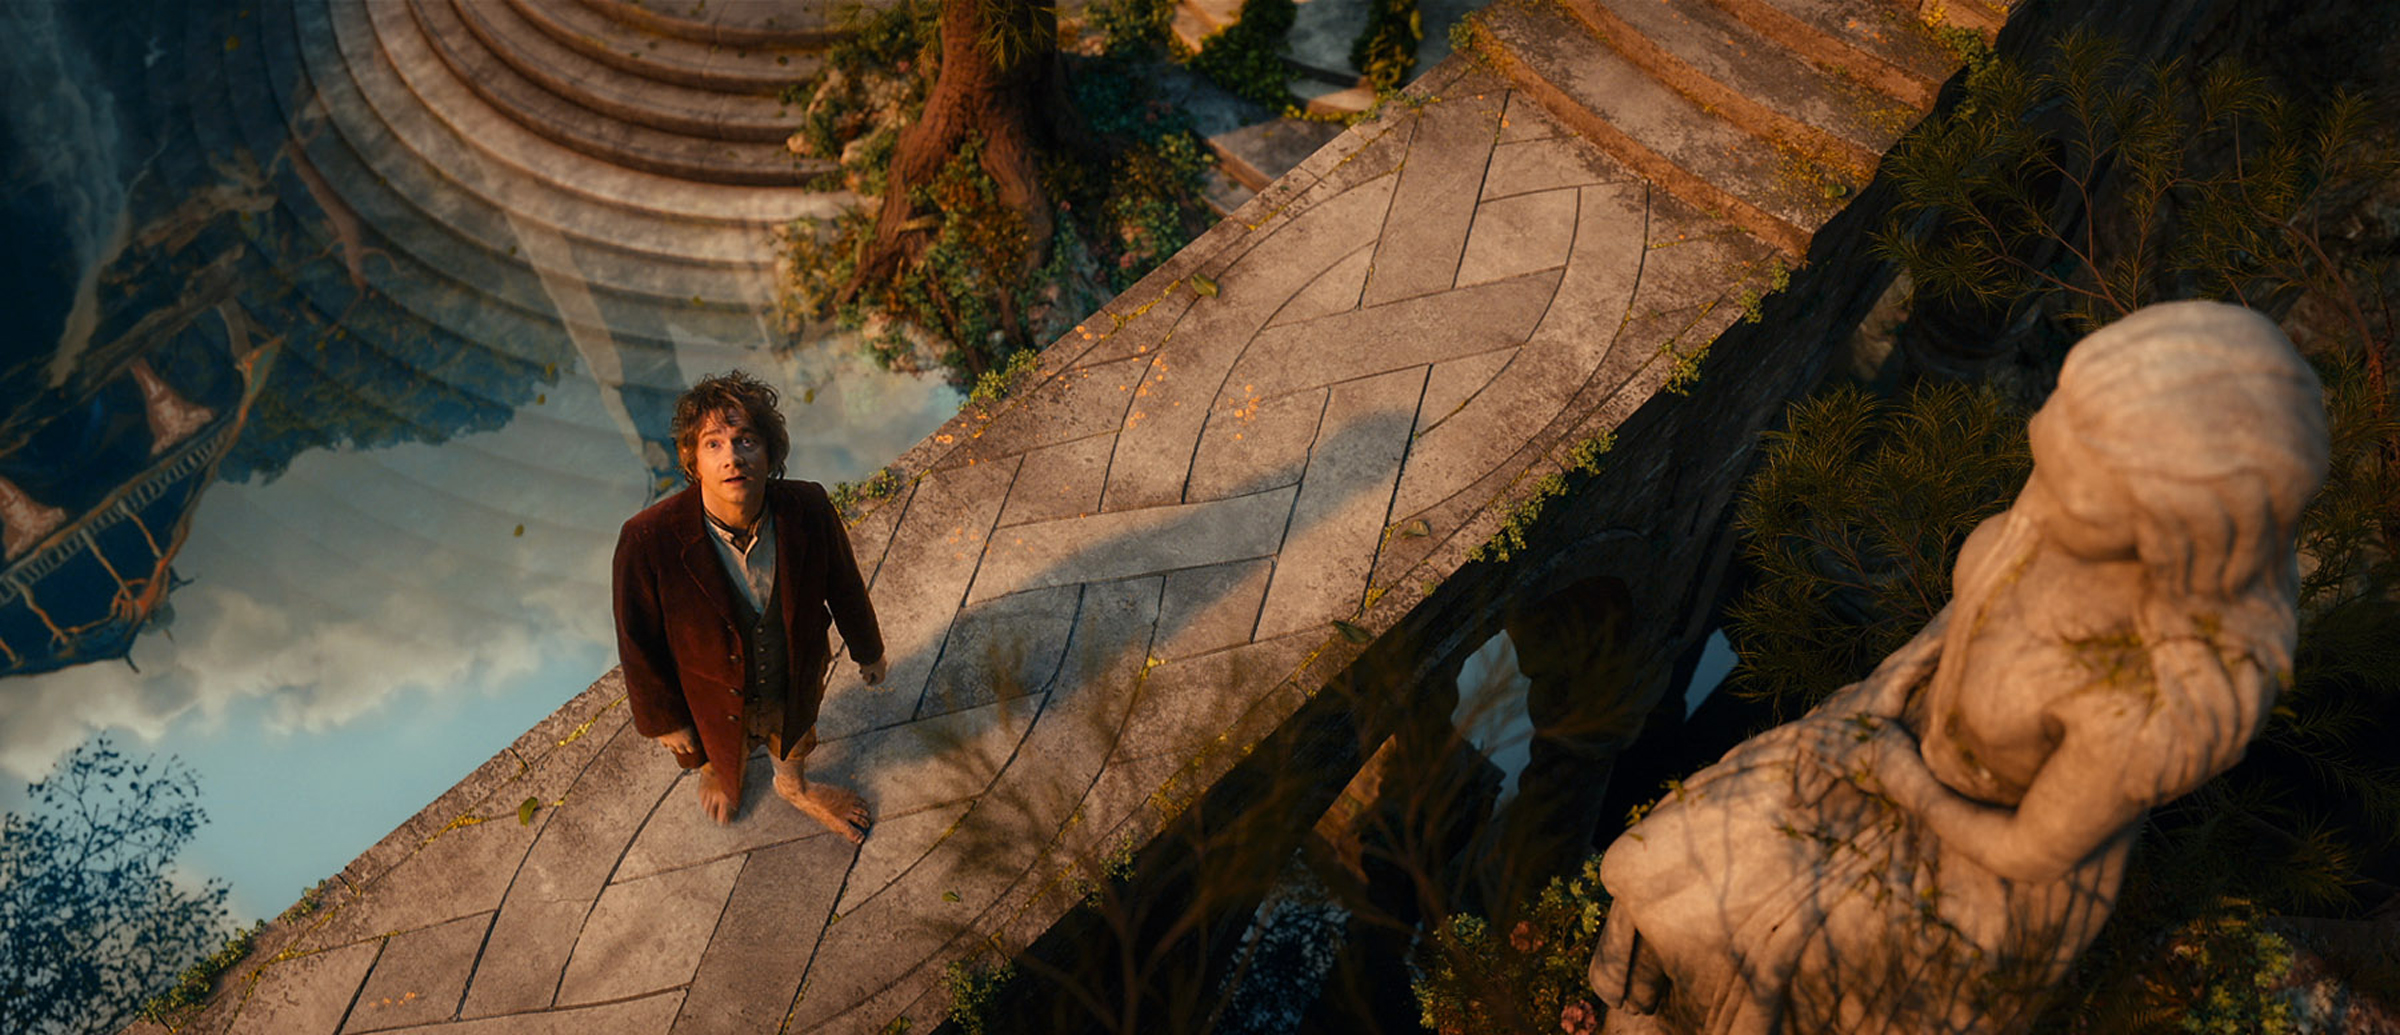 the character and role of bilbo baggins in jrr tolkiens the hobbit